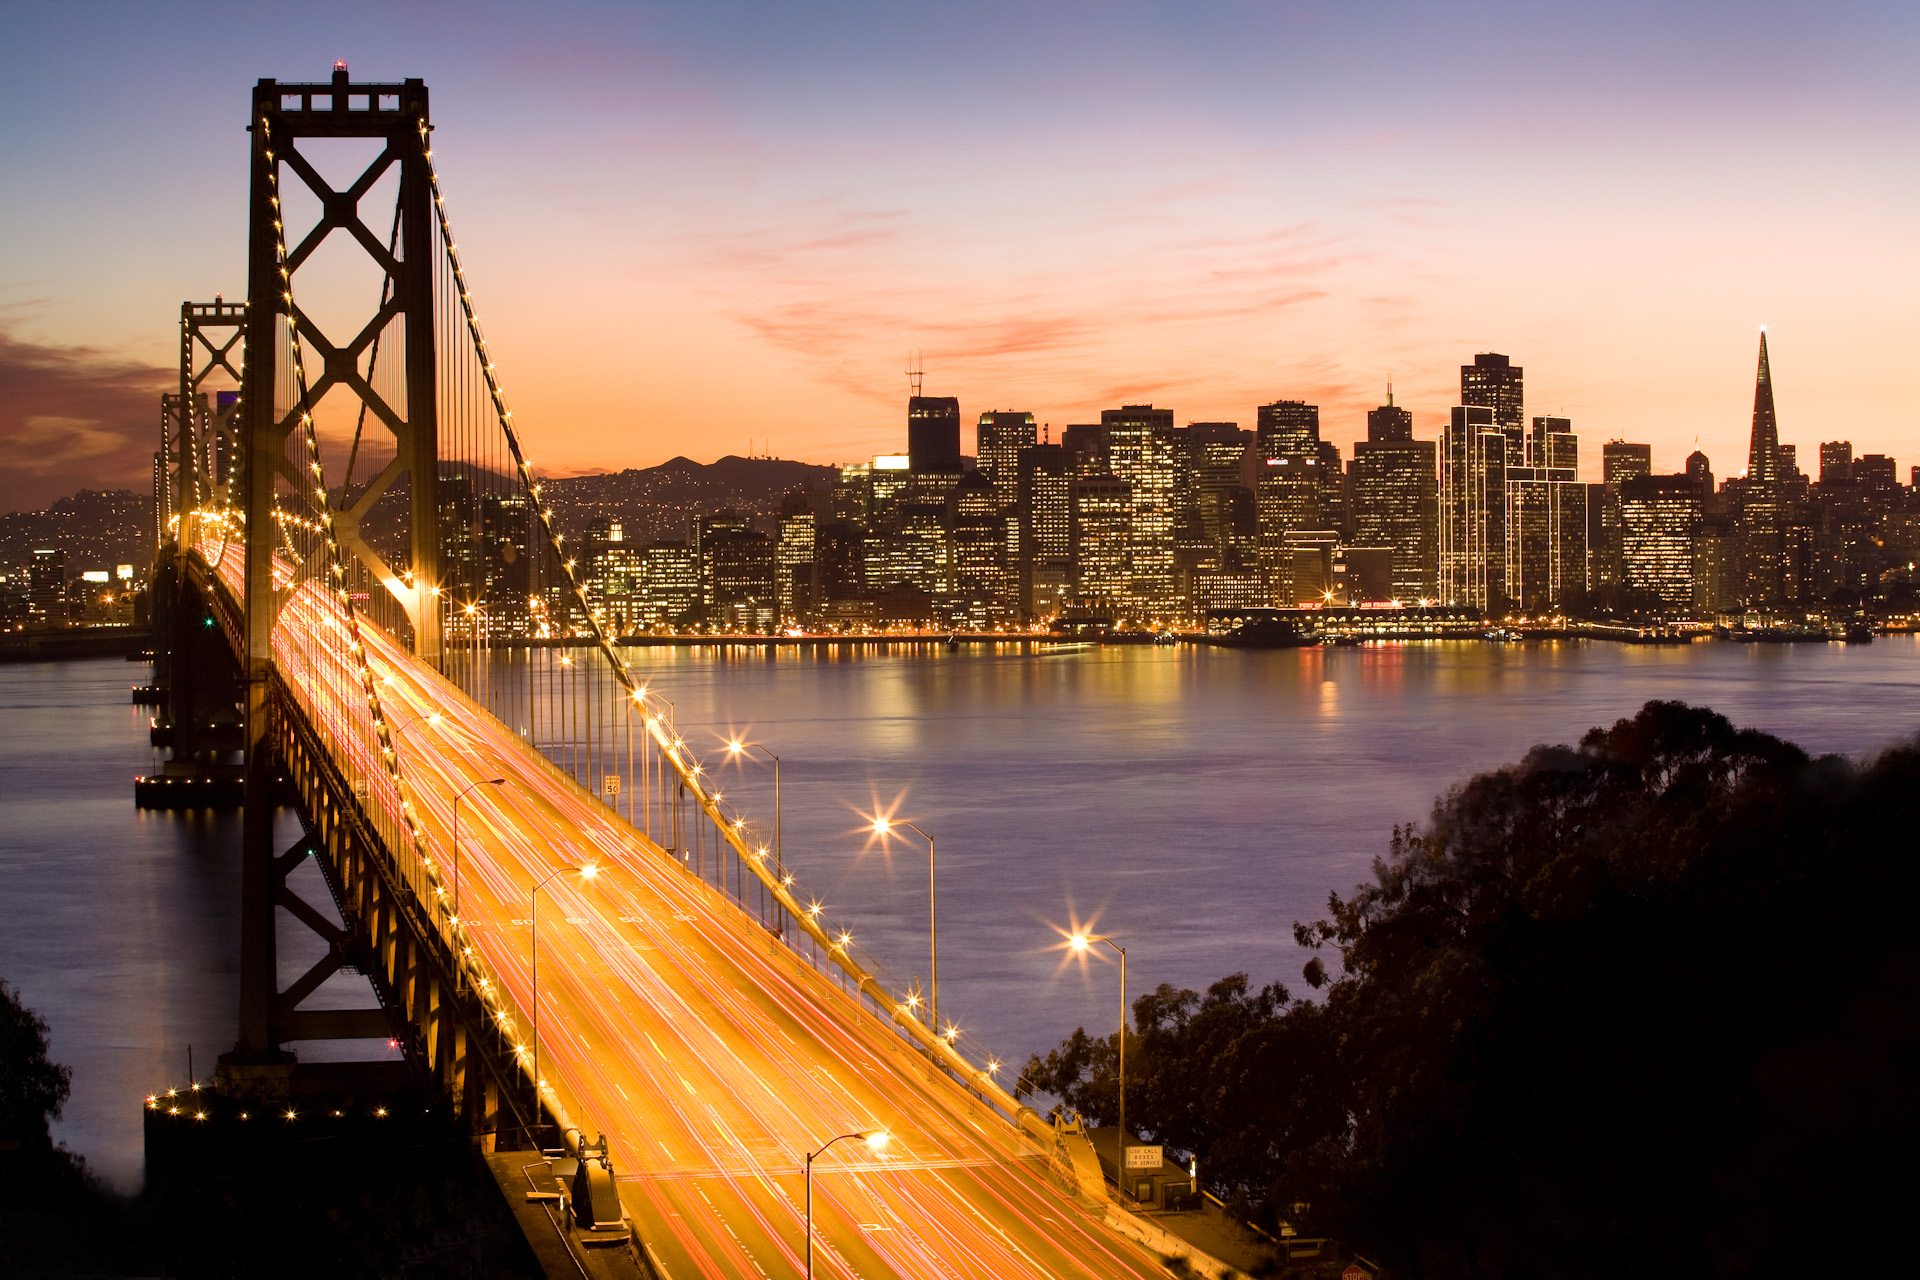 Civil-Engineering-Bay-Bridge-San-Francisco-California-Night-Jason-Bax.JPG